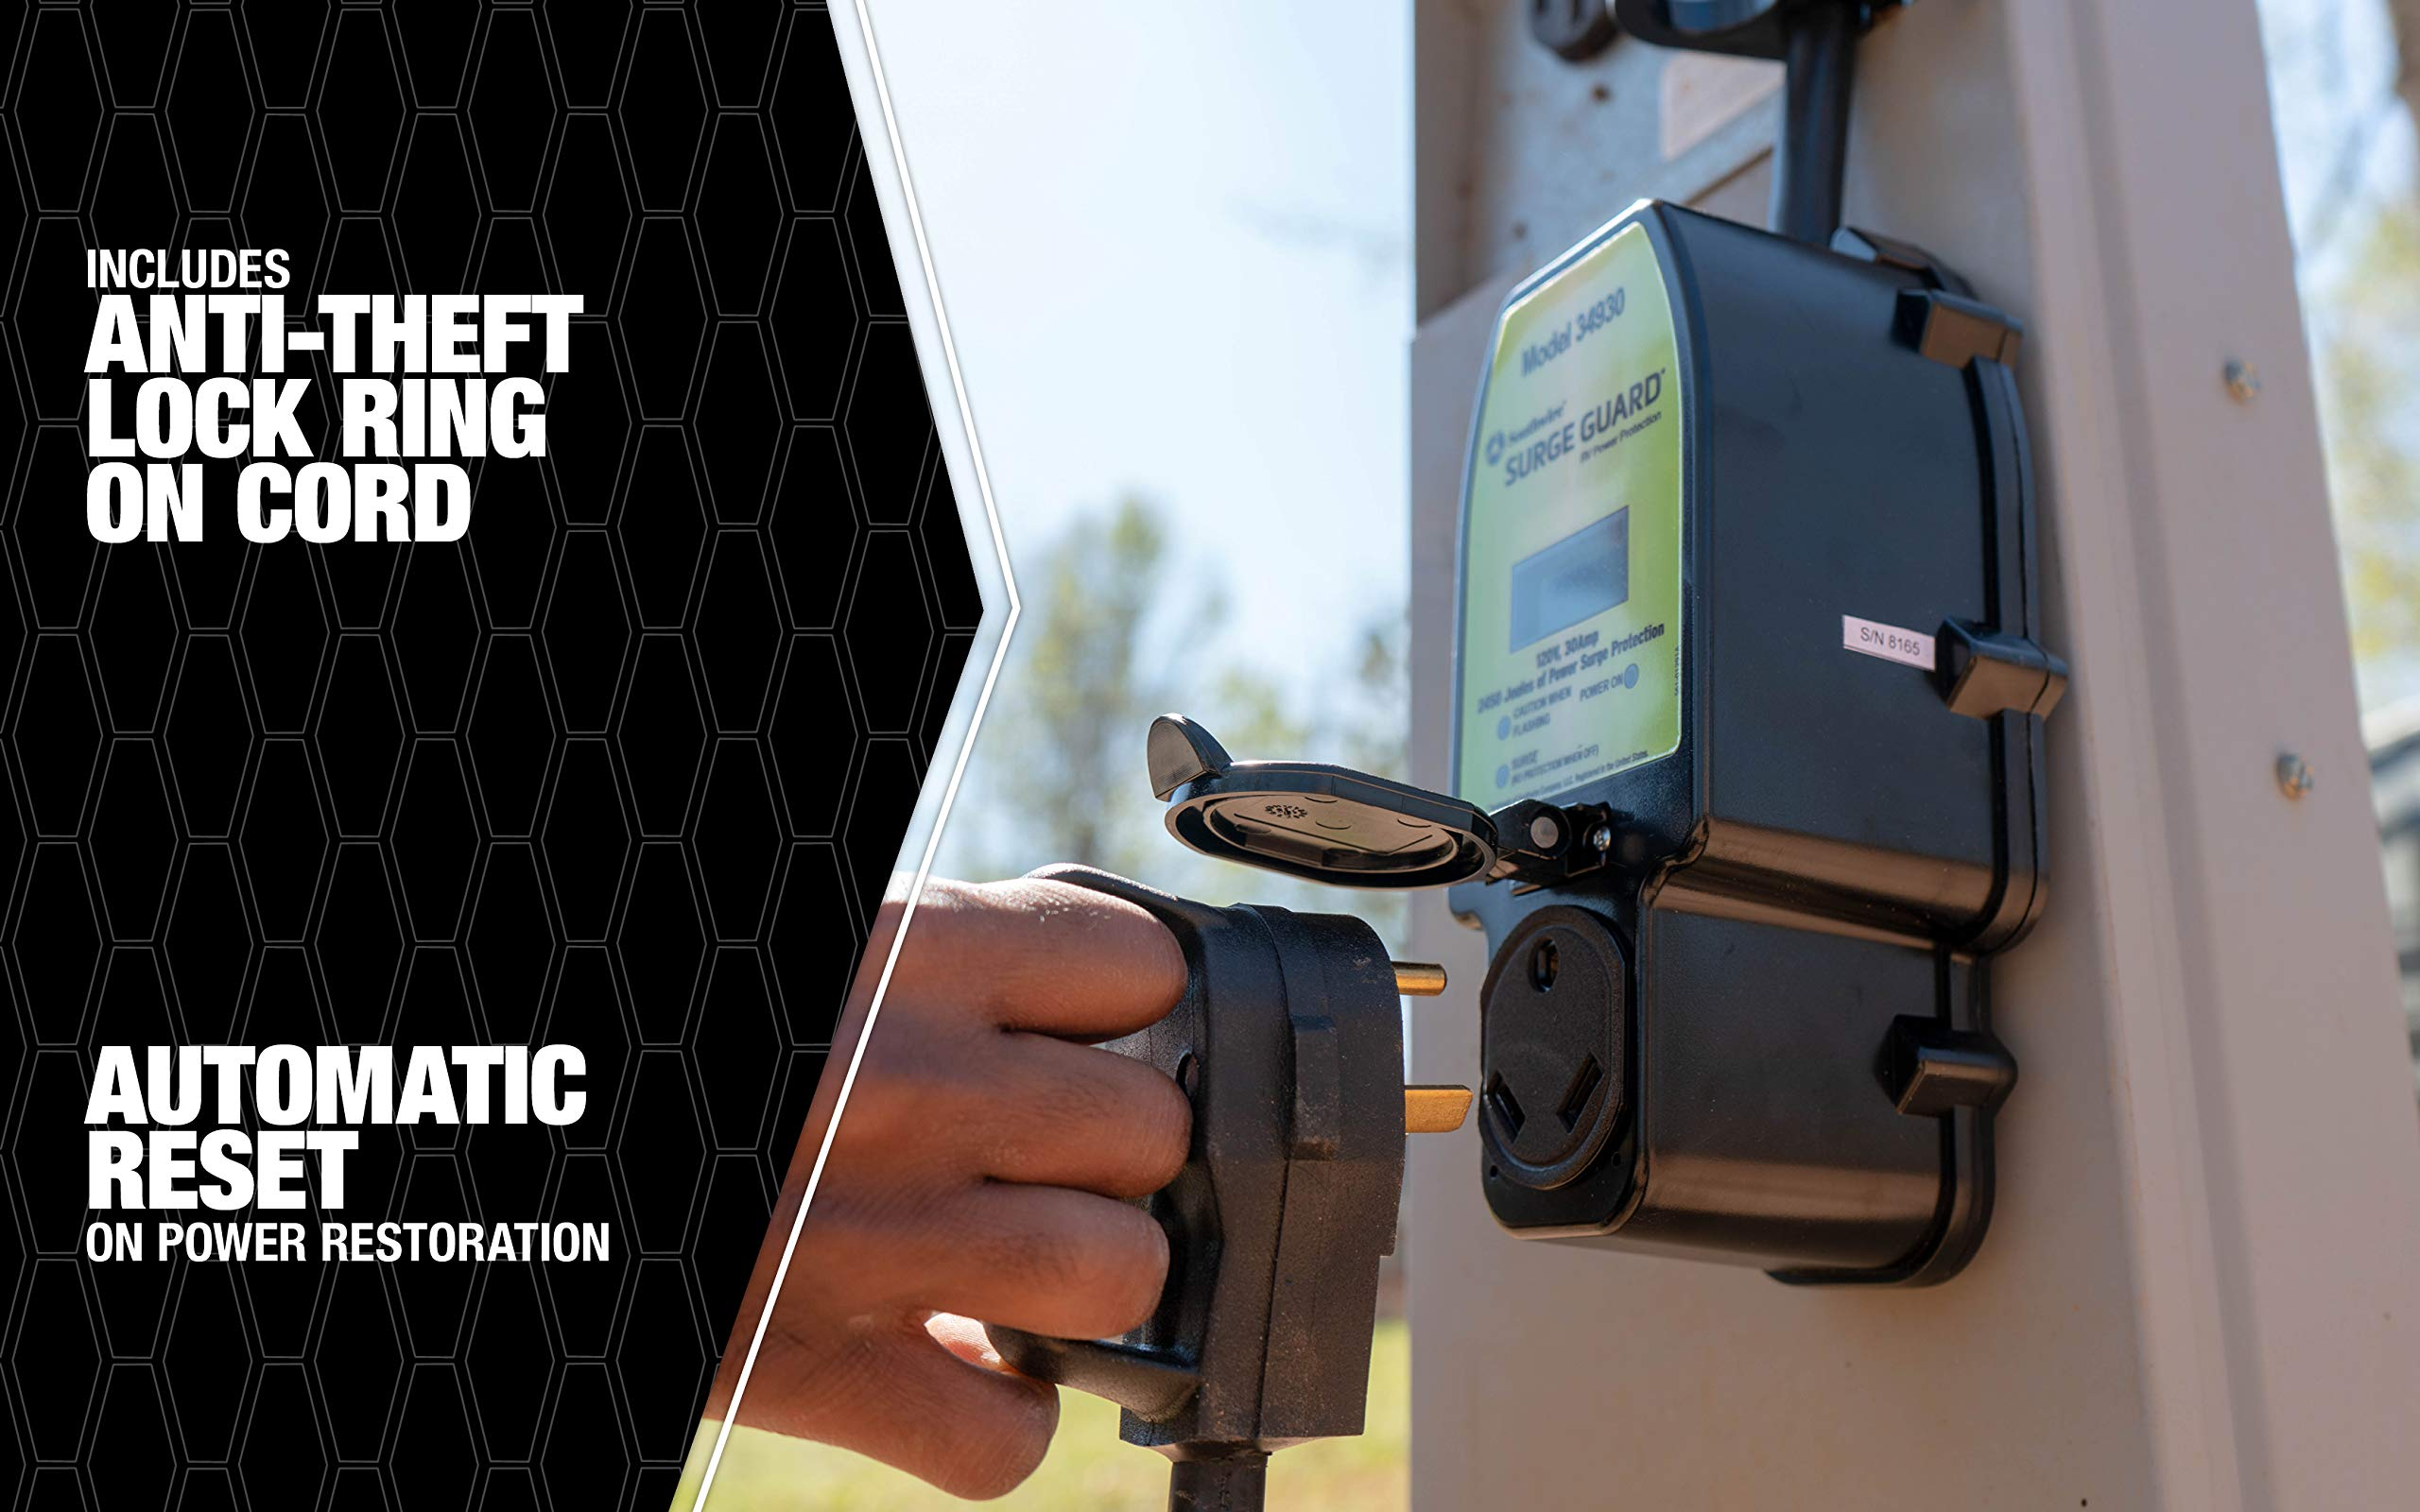 Southwire Black 34930 Surge Guard 30A-Full Protection Portable with LCD Display by Southwire (Image #5)